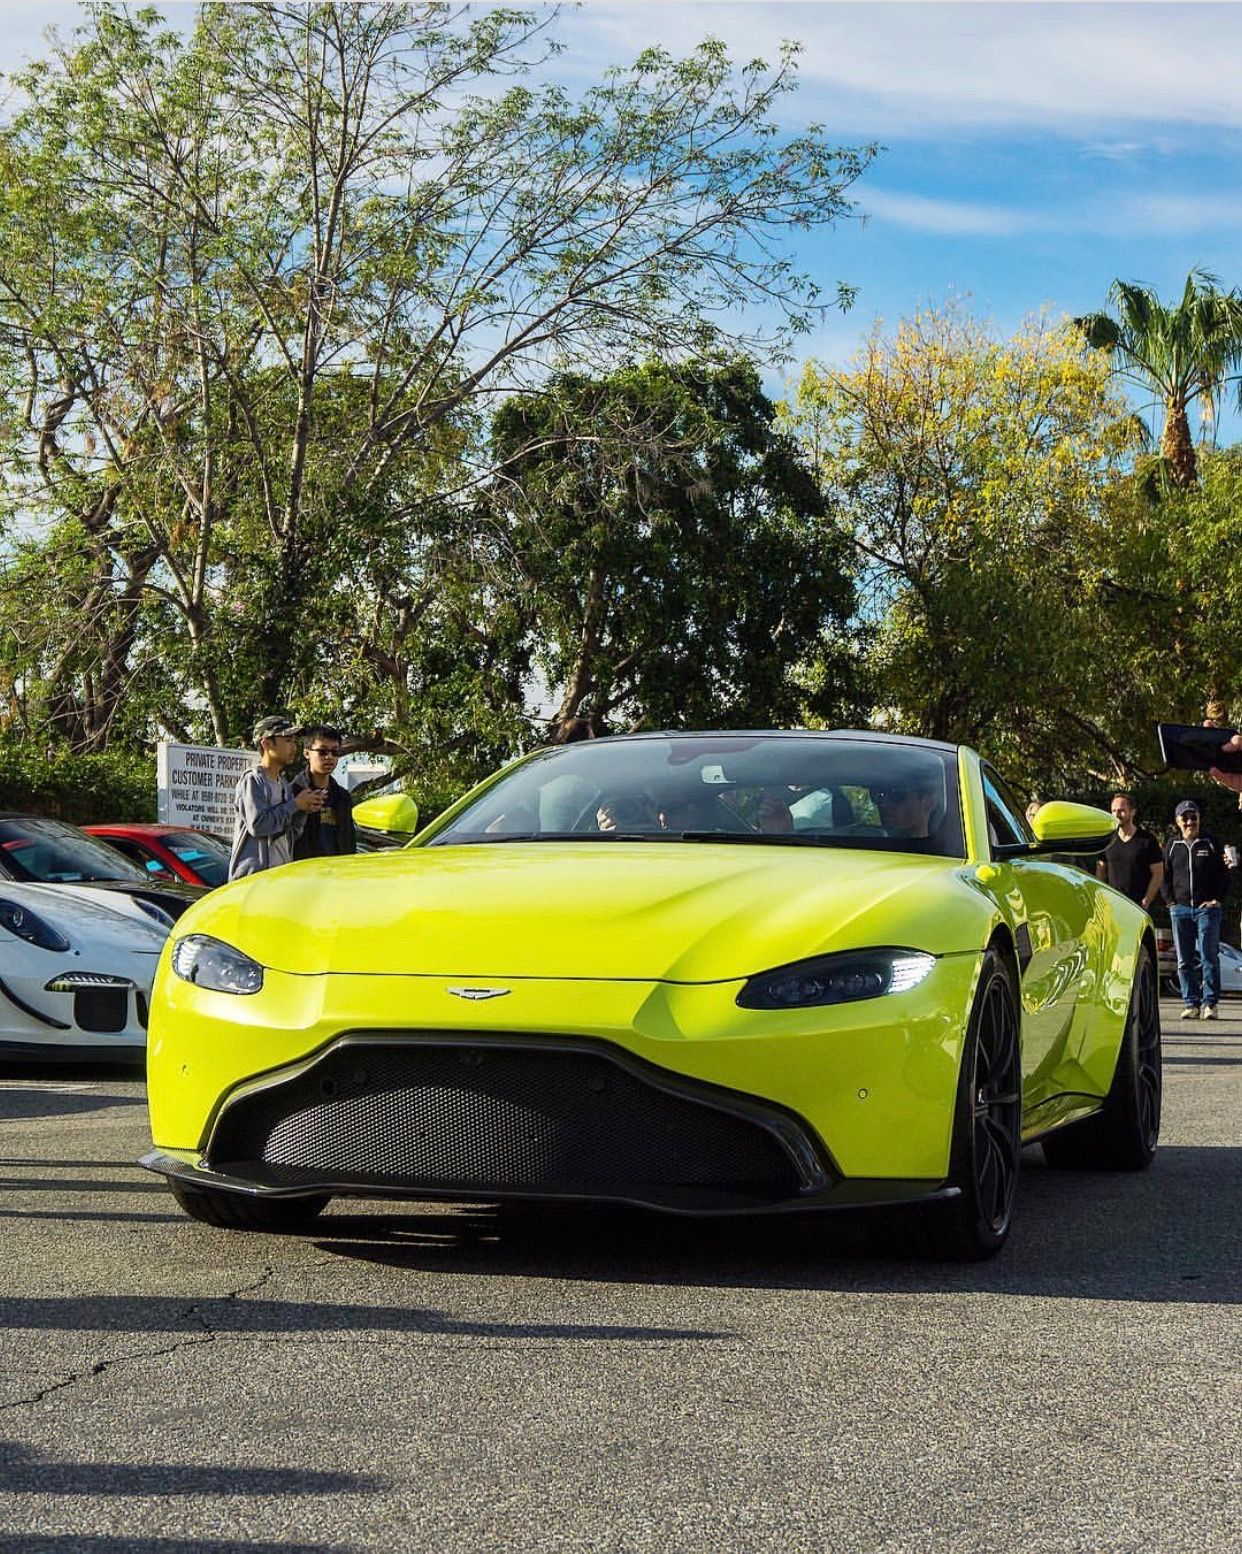 Aston Martin Vantage Painted In Lime Essence Photo Taken By N8 Shoots On Instagram Aston Martin Vantage Aston Martin Cars Aston Martin Lagonda